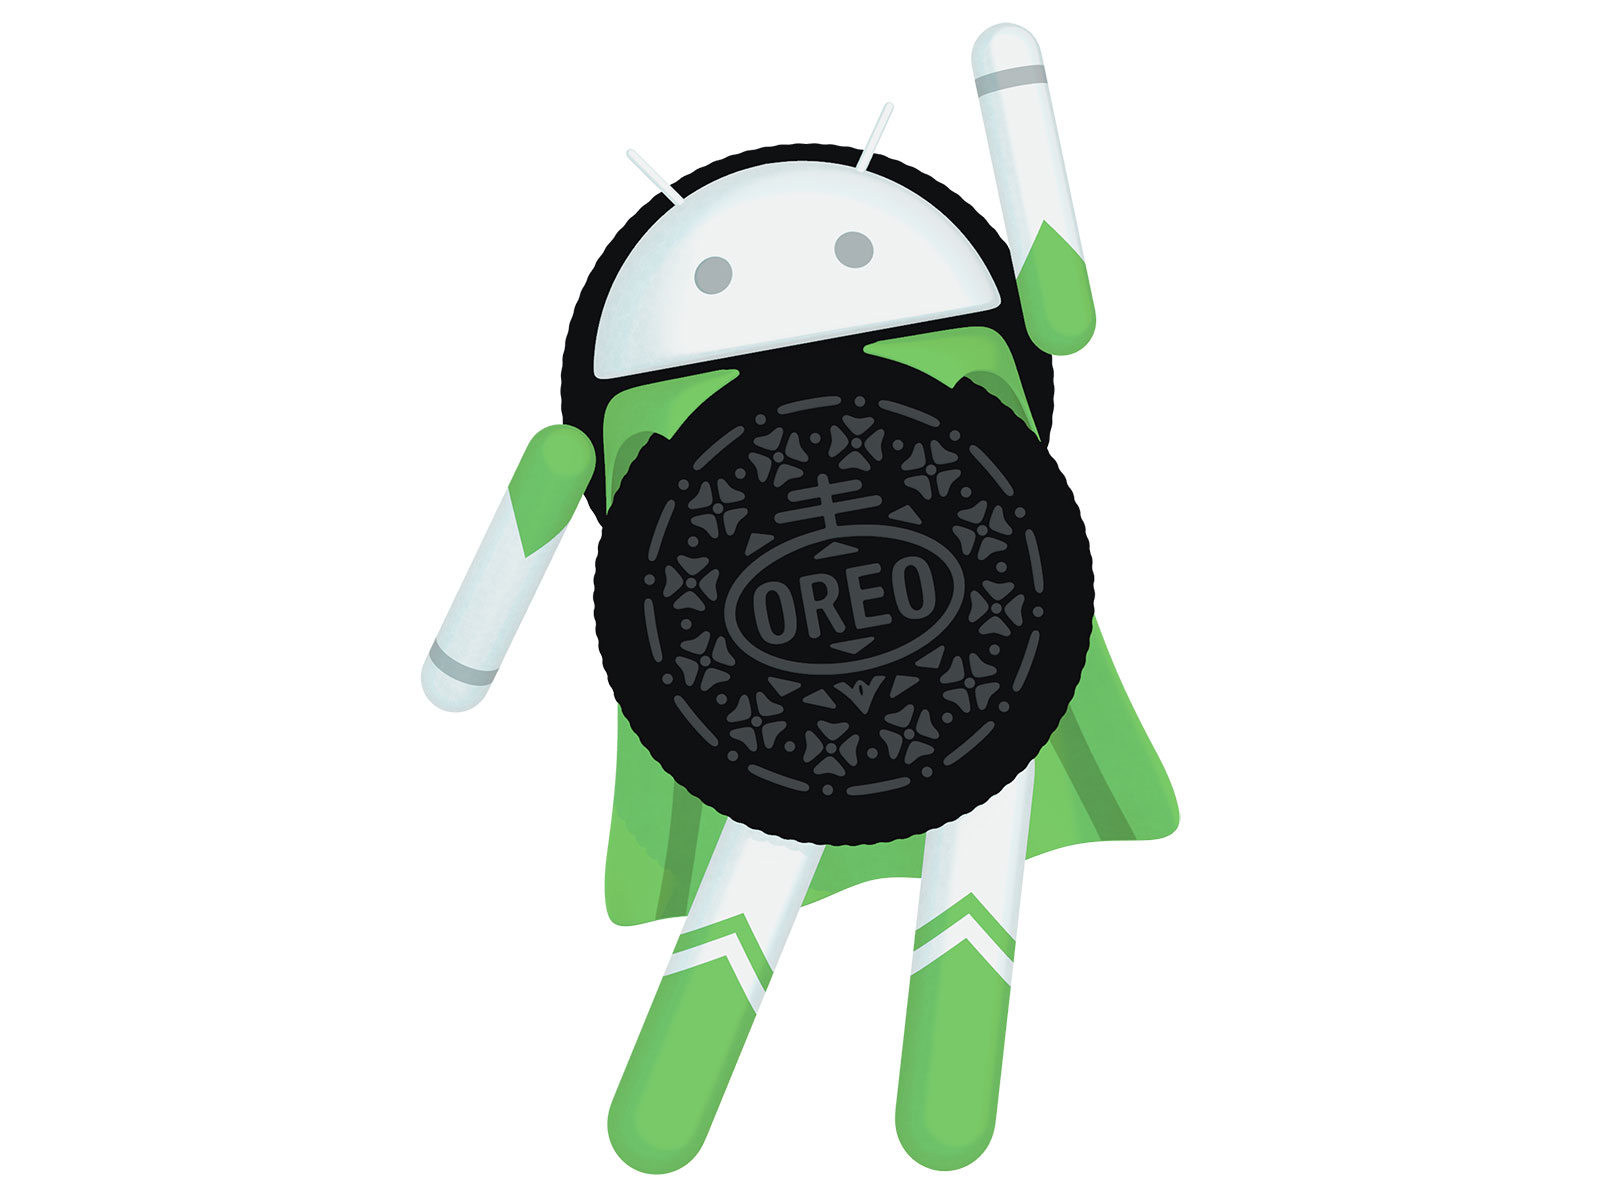 oreo cookies with android robot